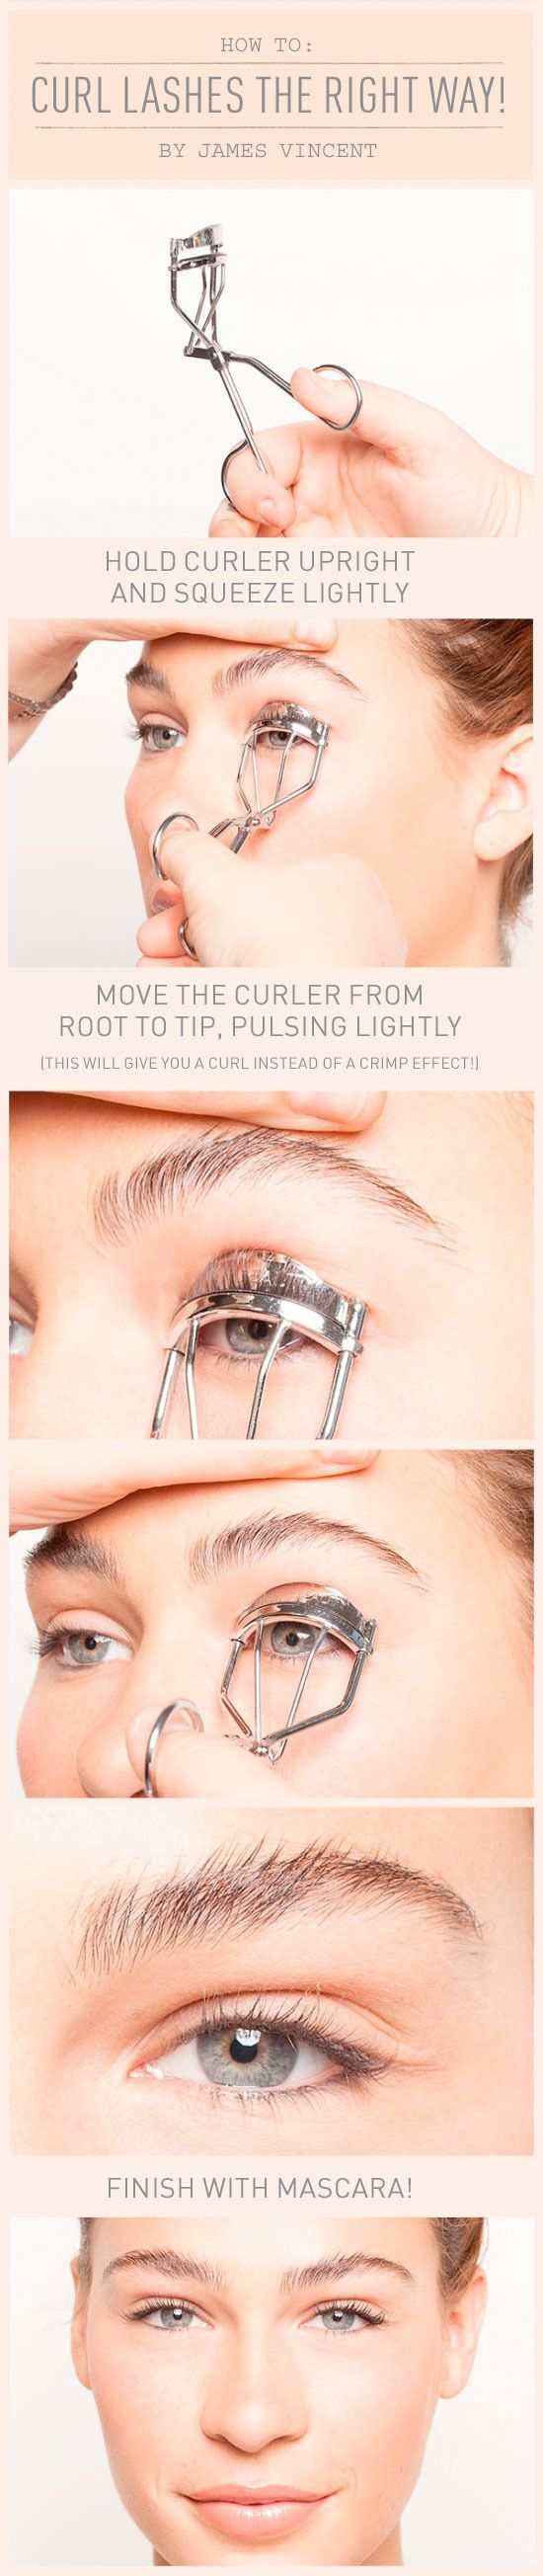 How To Curl Lashes The Right Way This Is The Silent Makeup Artist